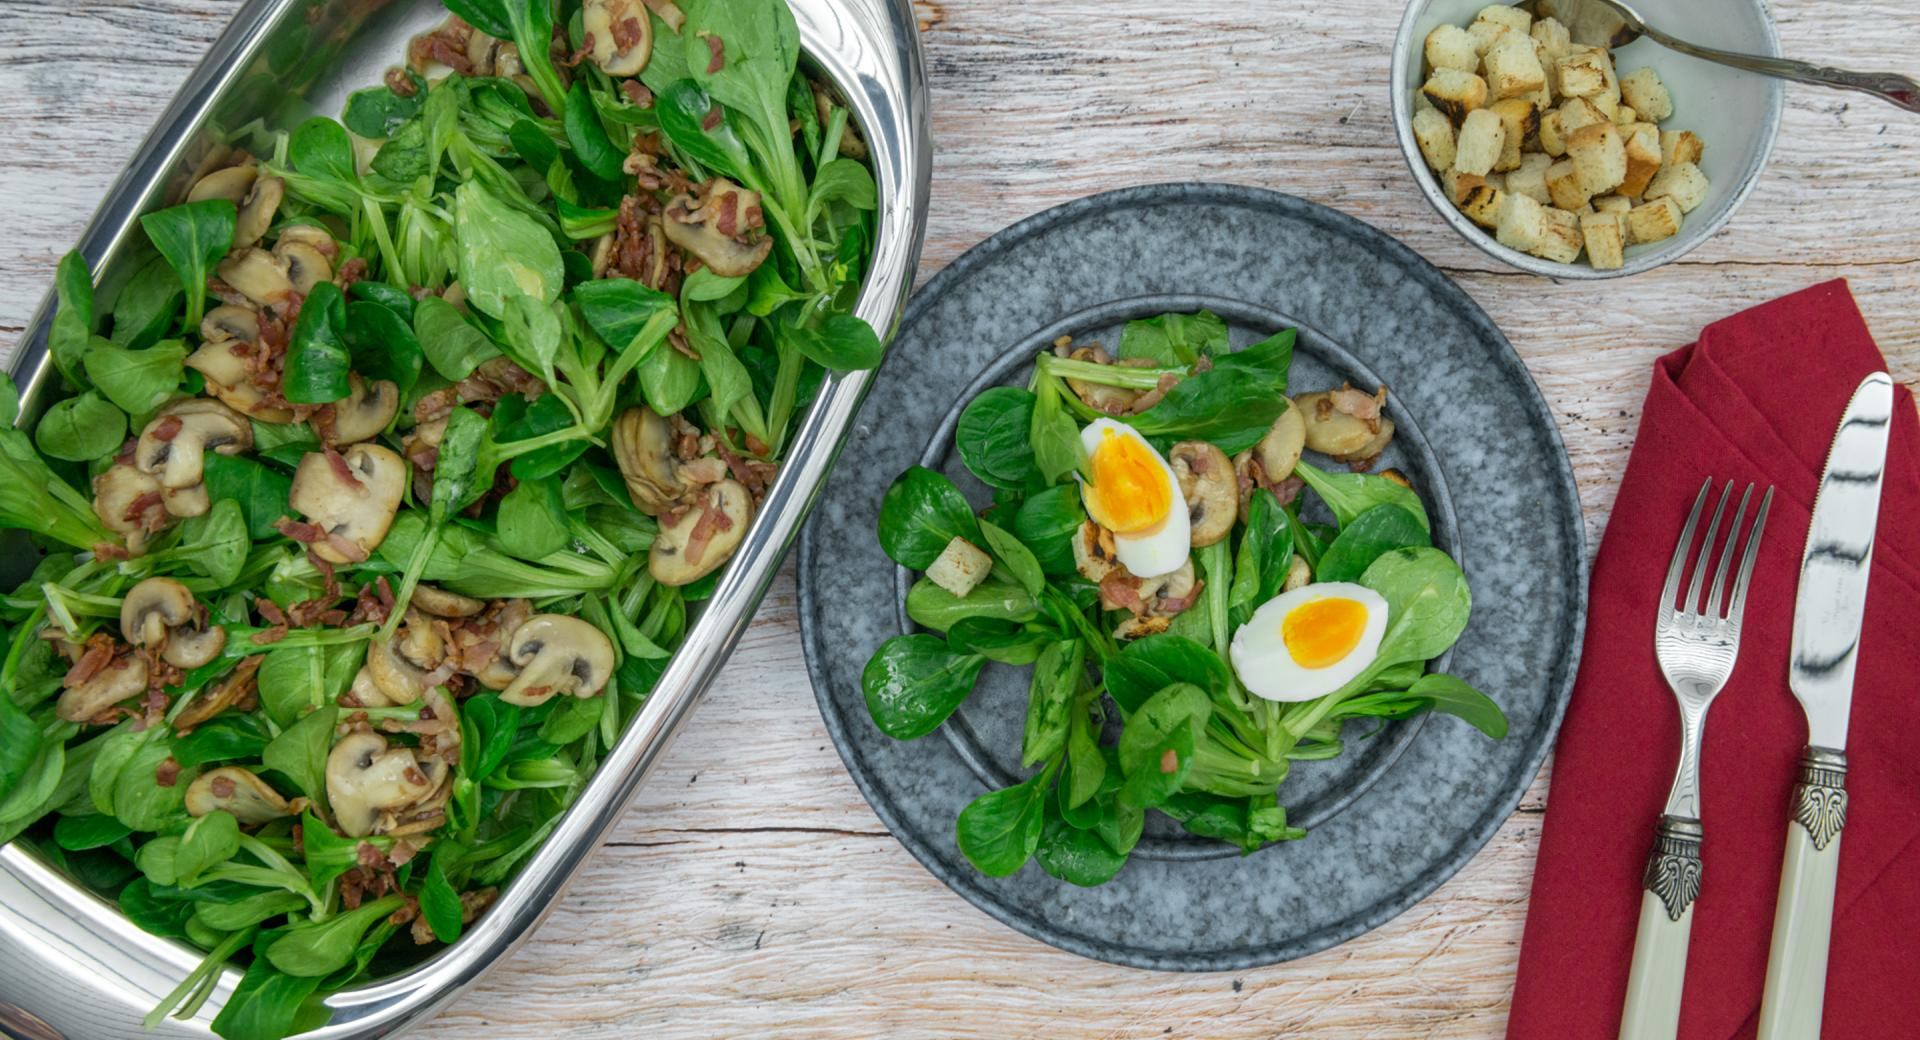 Lamb's lettuce with bacon and mushrooms